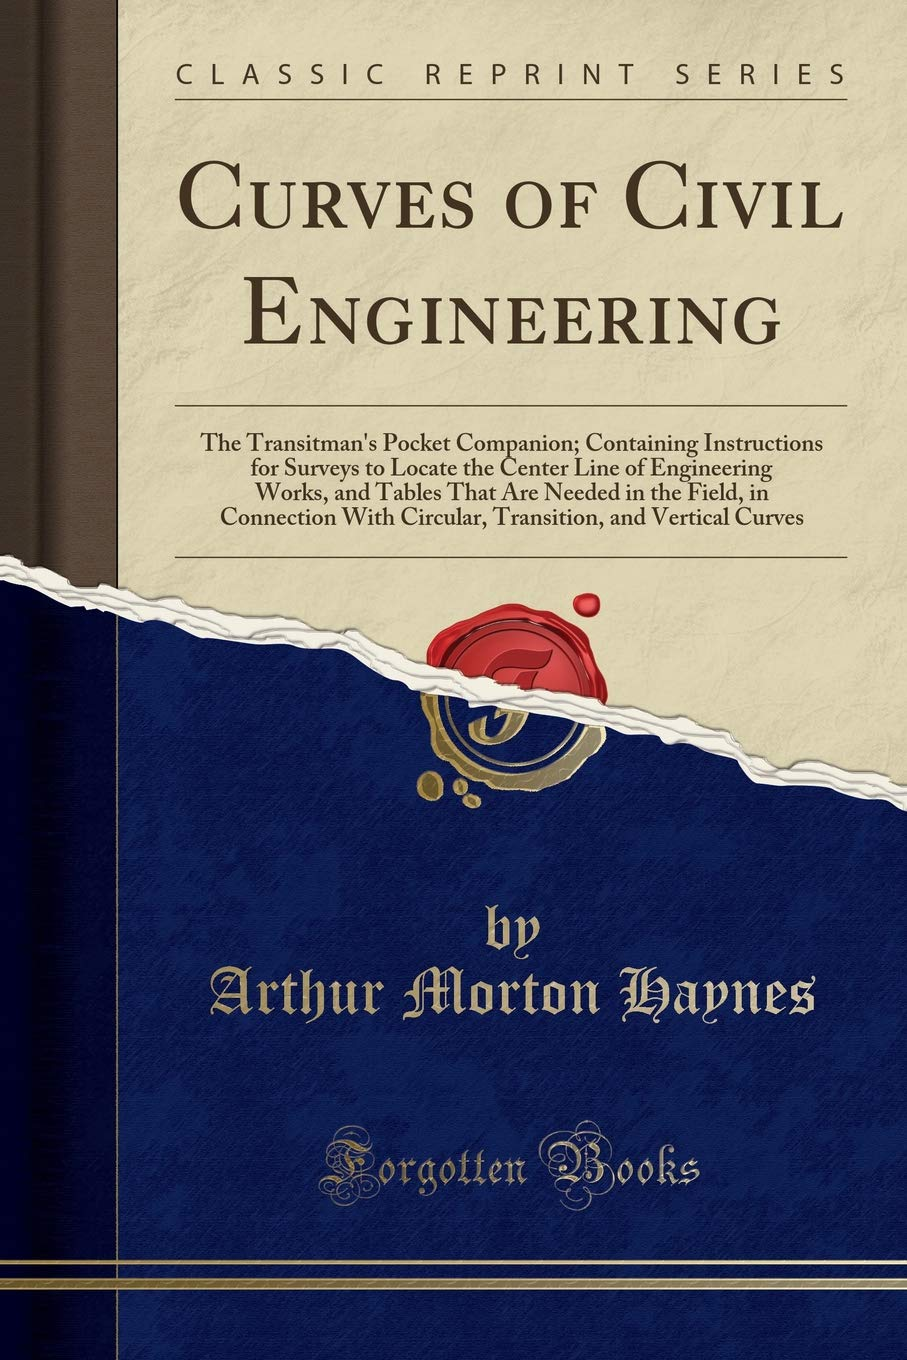 Download Curves of Civil Engineering: The Transitman's Pocket Companion; Containing Instructions for Surveys to Locate the Center Line of Engineering Works, ... Circular, Transition, and Vertical Curves pdf epub